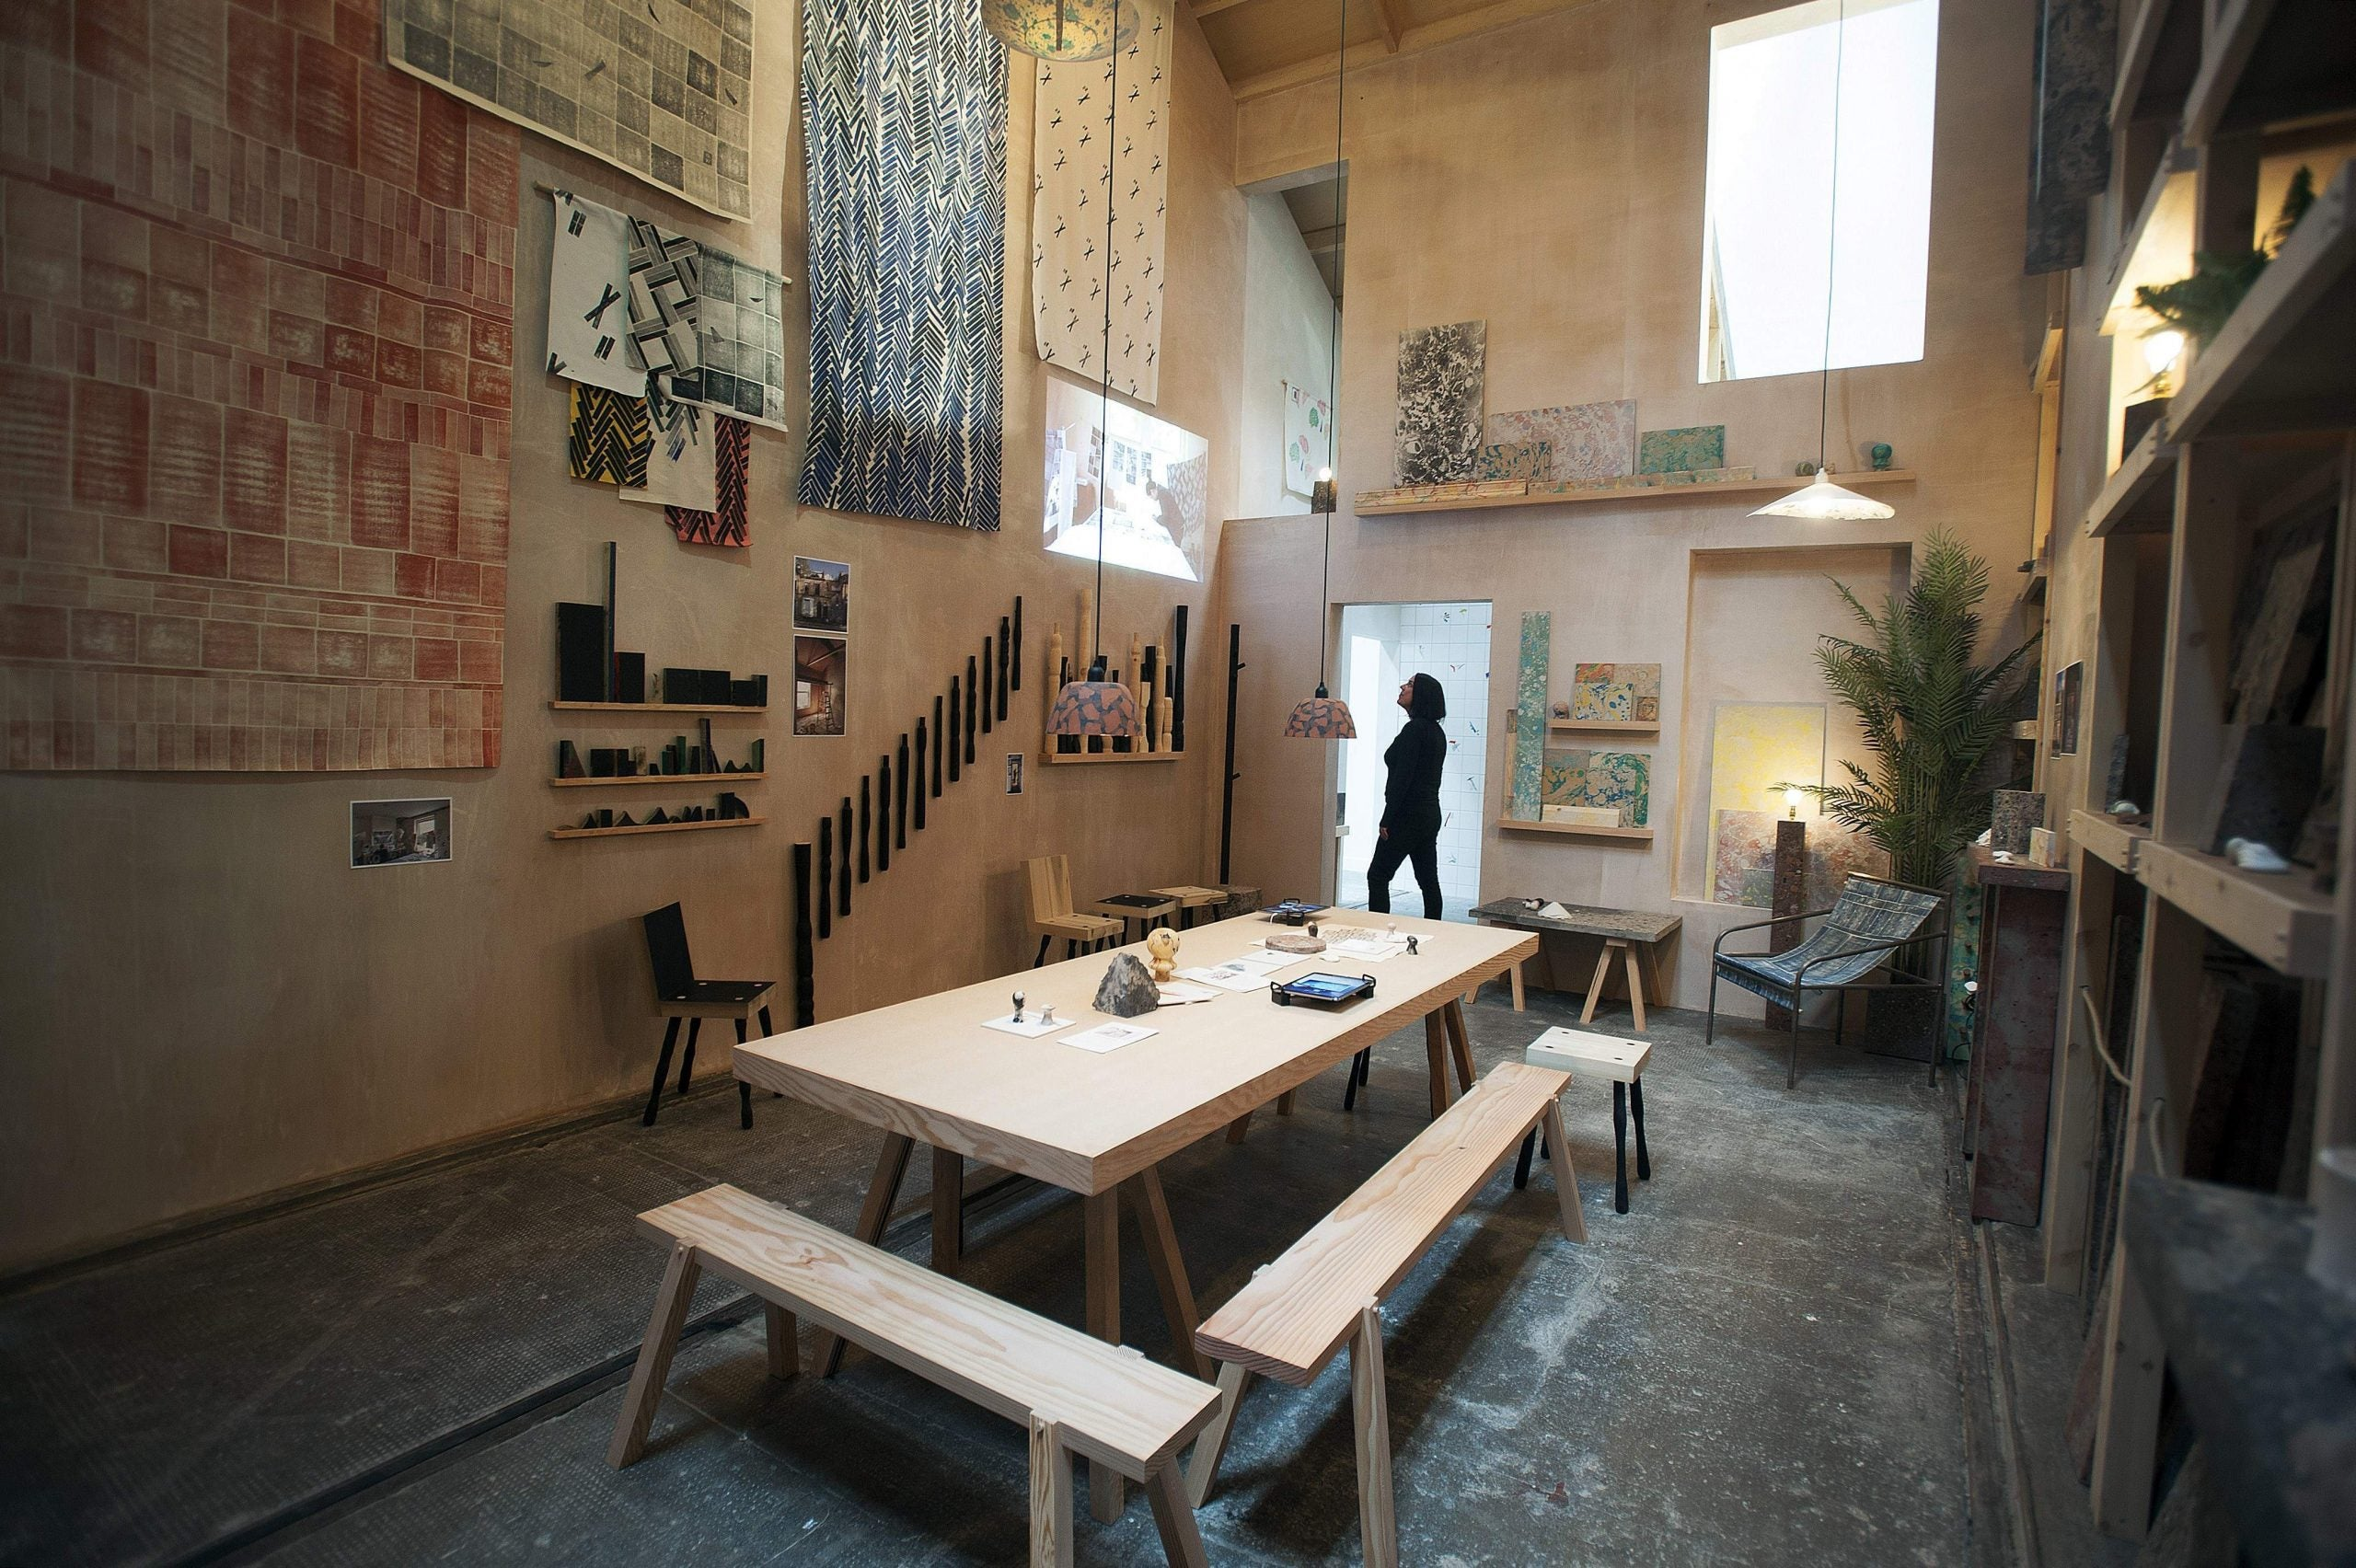 Meeting the young architects who are shortlisted for the Turner Prize